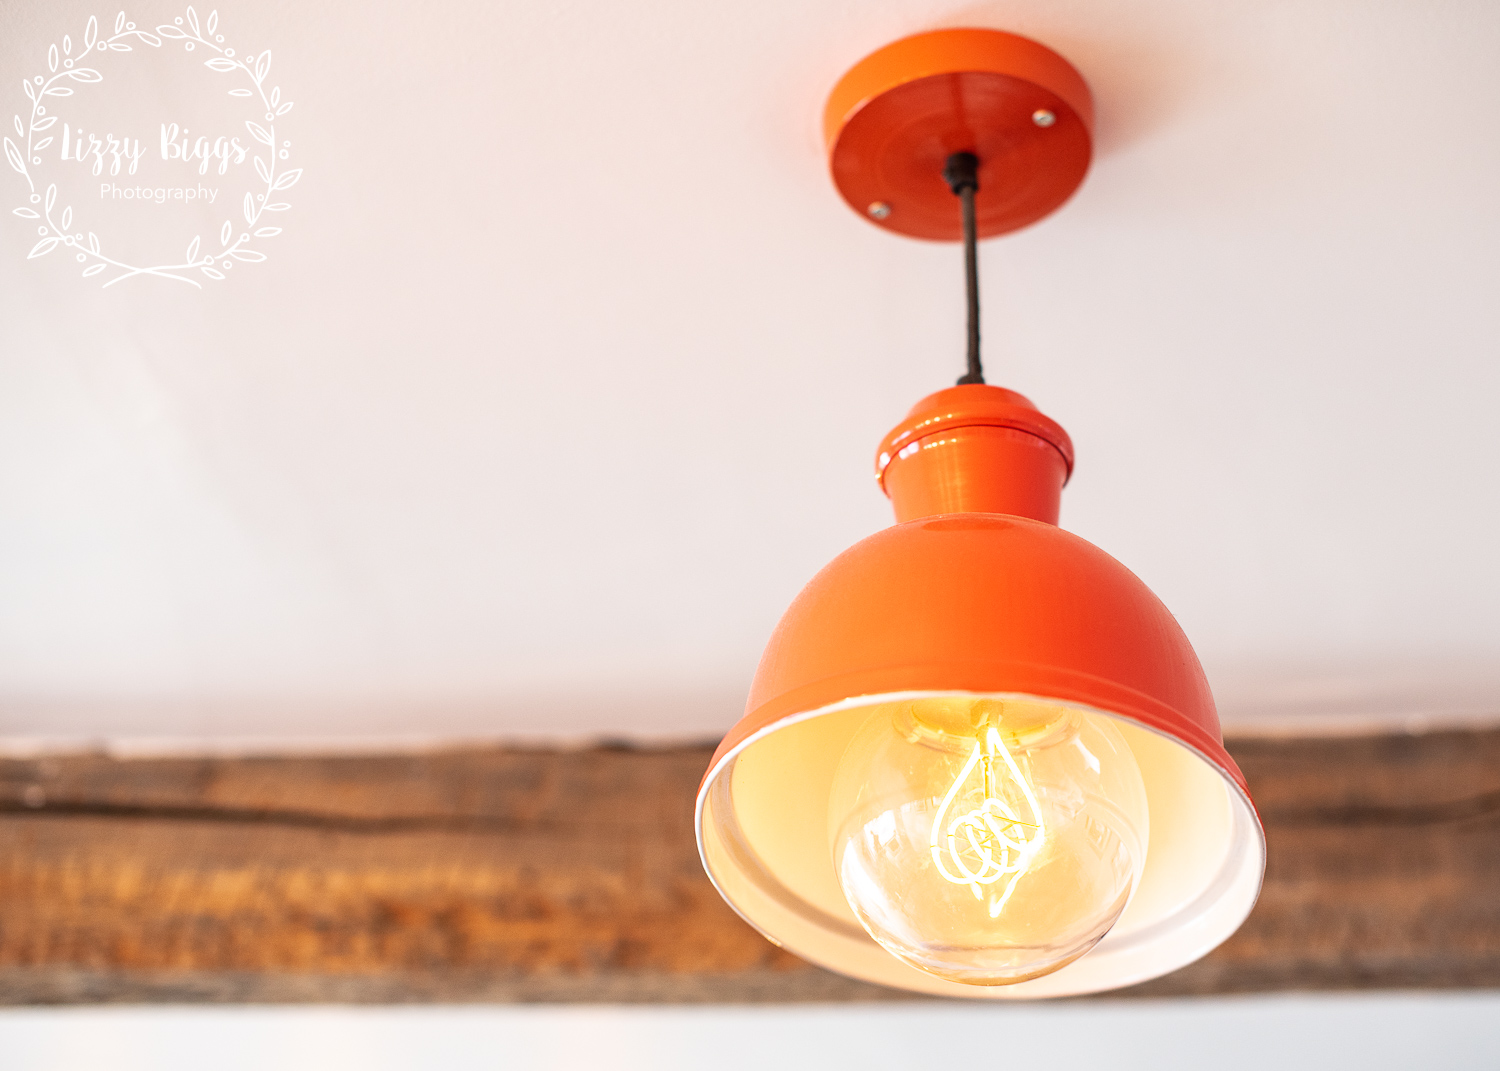 Interesting modern lighting selections - much in keeping with coffee-shop trends